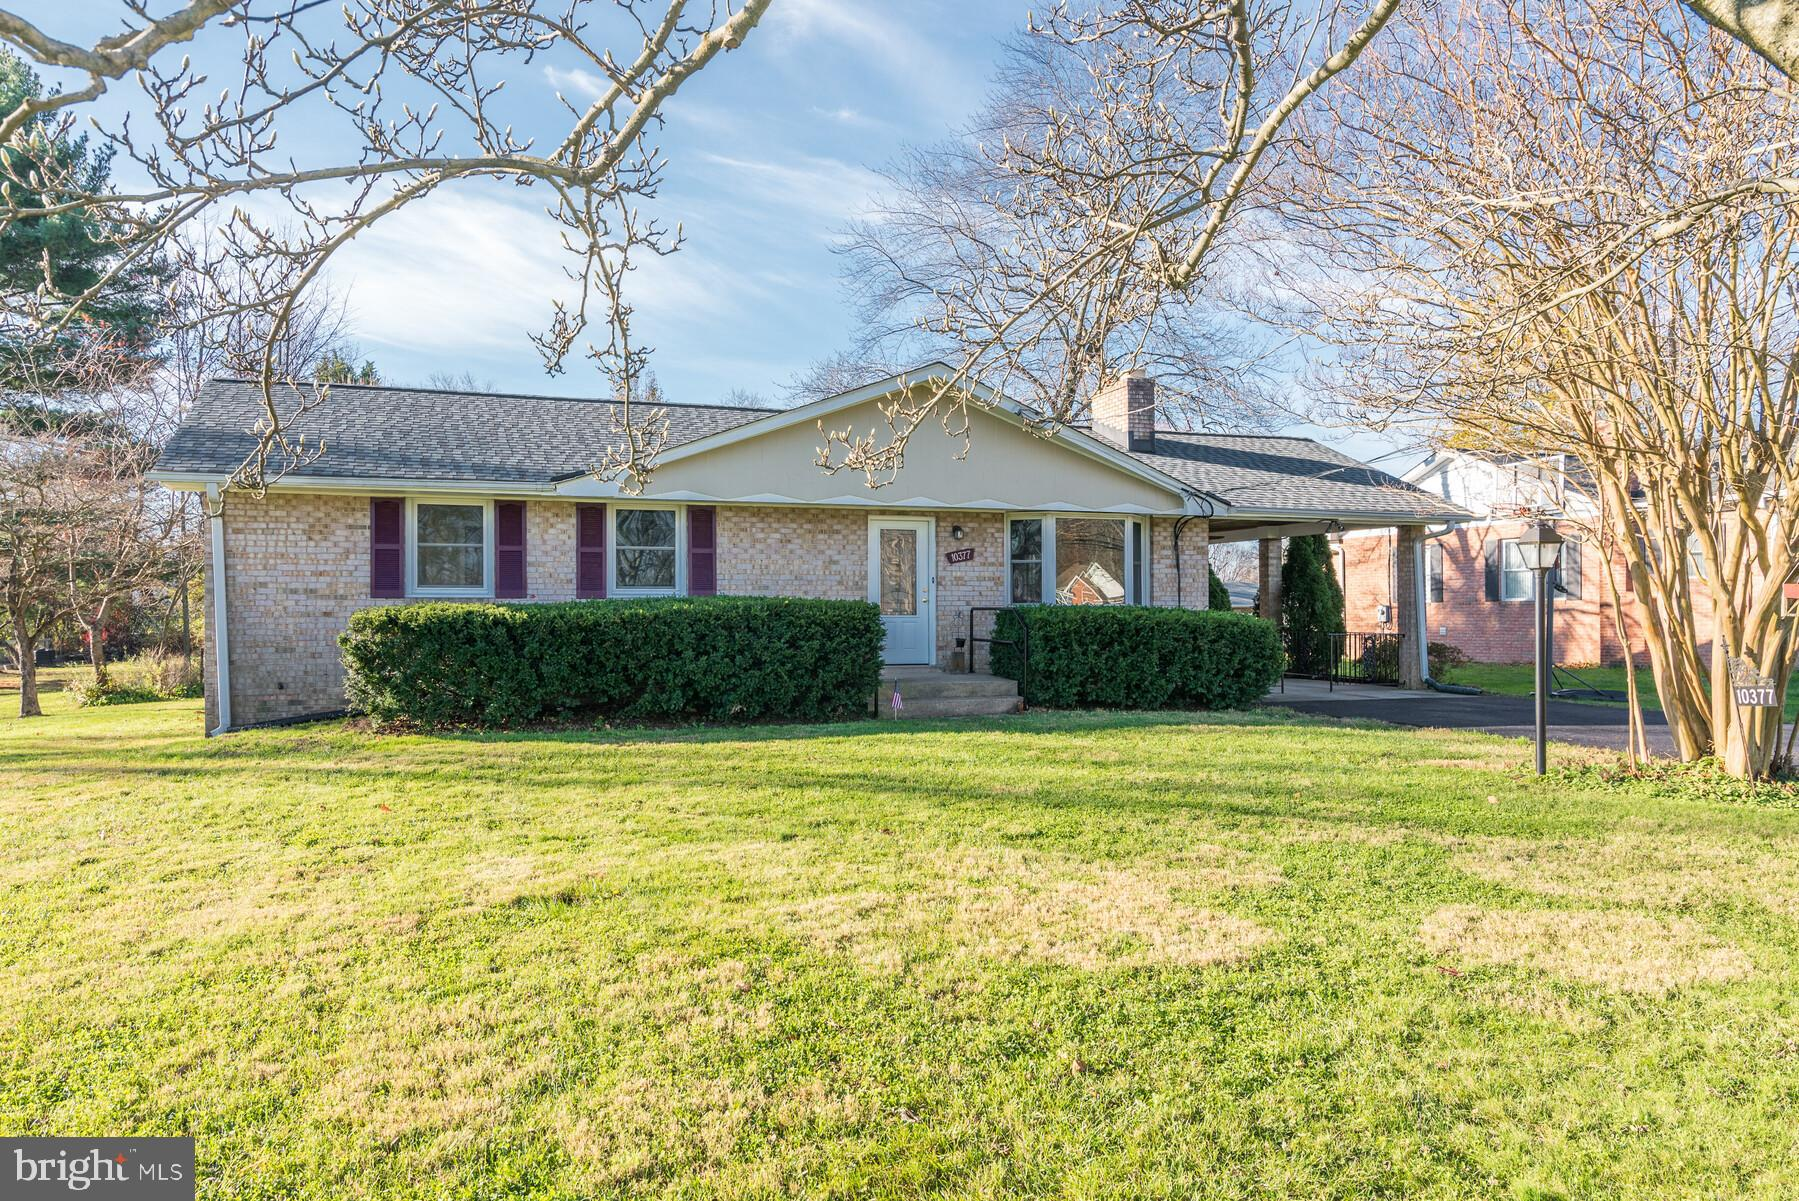 Opportunity knocks! Pristine all brick rancher sited on dead end street in sought after southern How